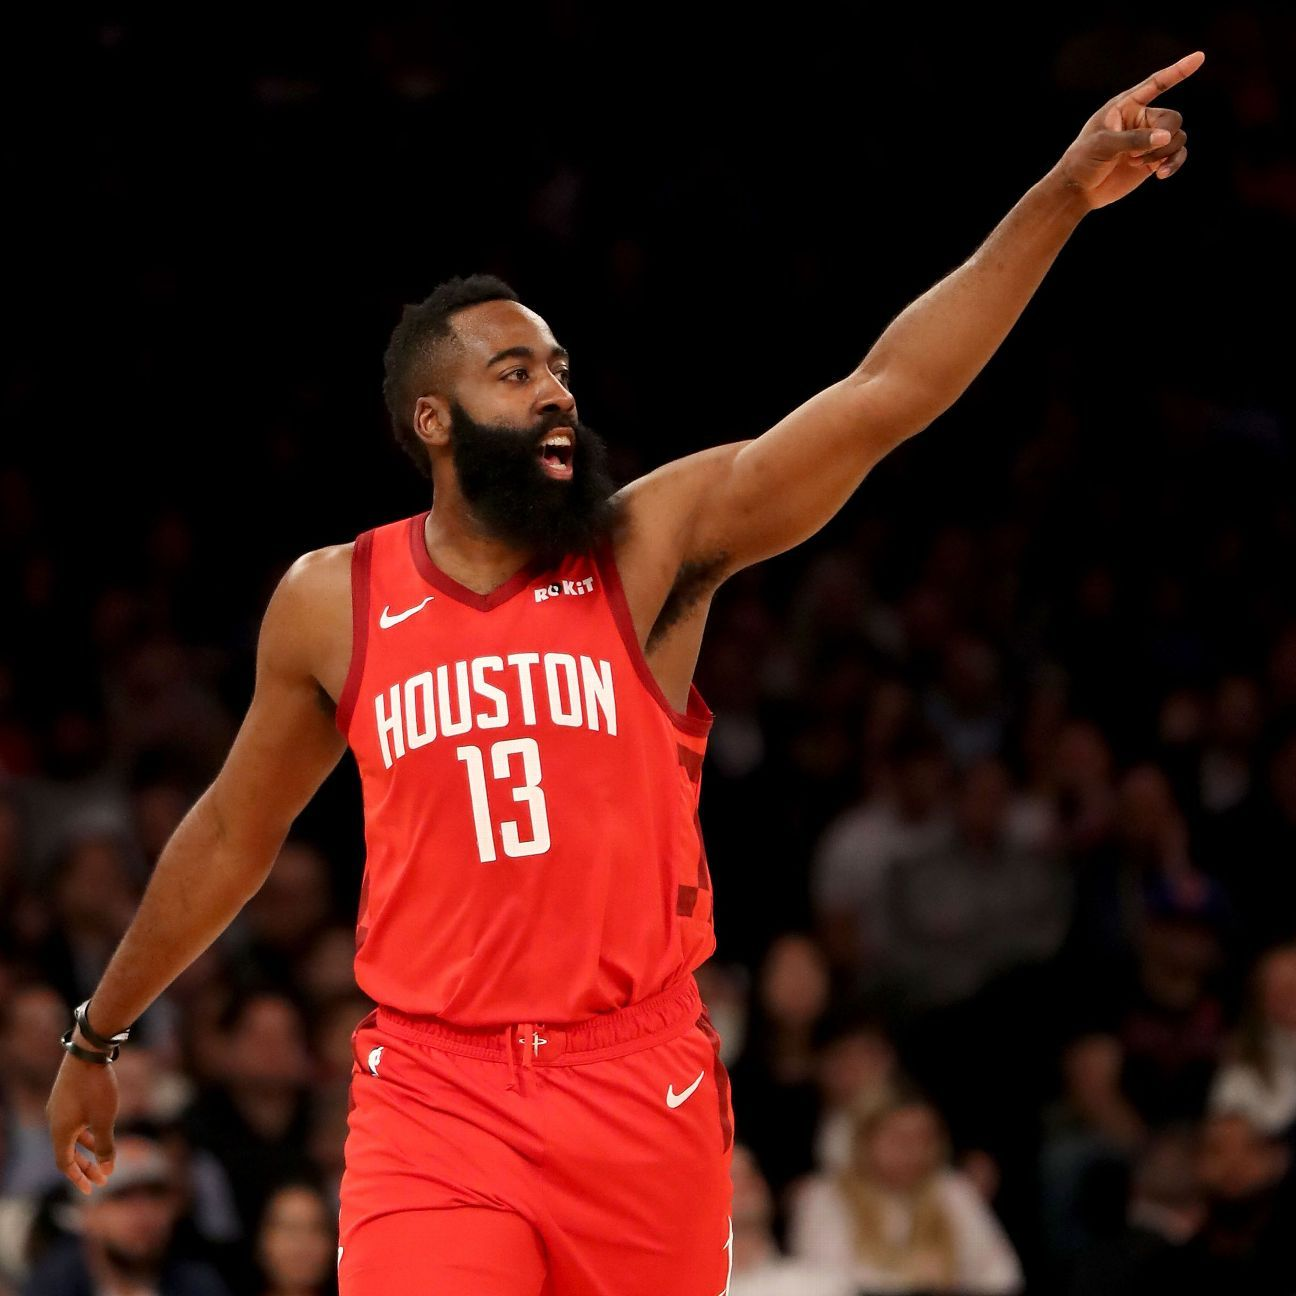 Houston Rockets Where To Watch The Upcoming Match Espn: Houston Rockets' James Harden Hits 30-point Mark In 21